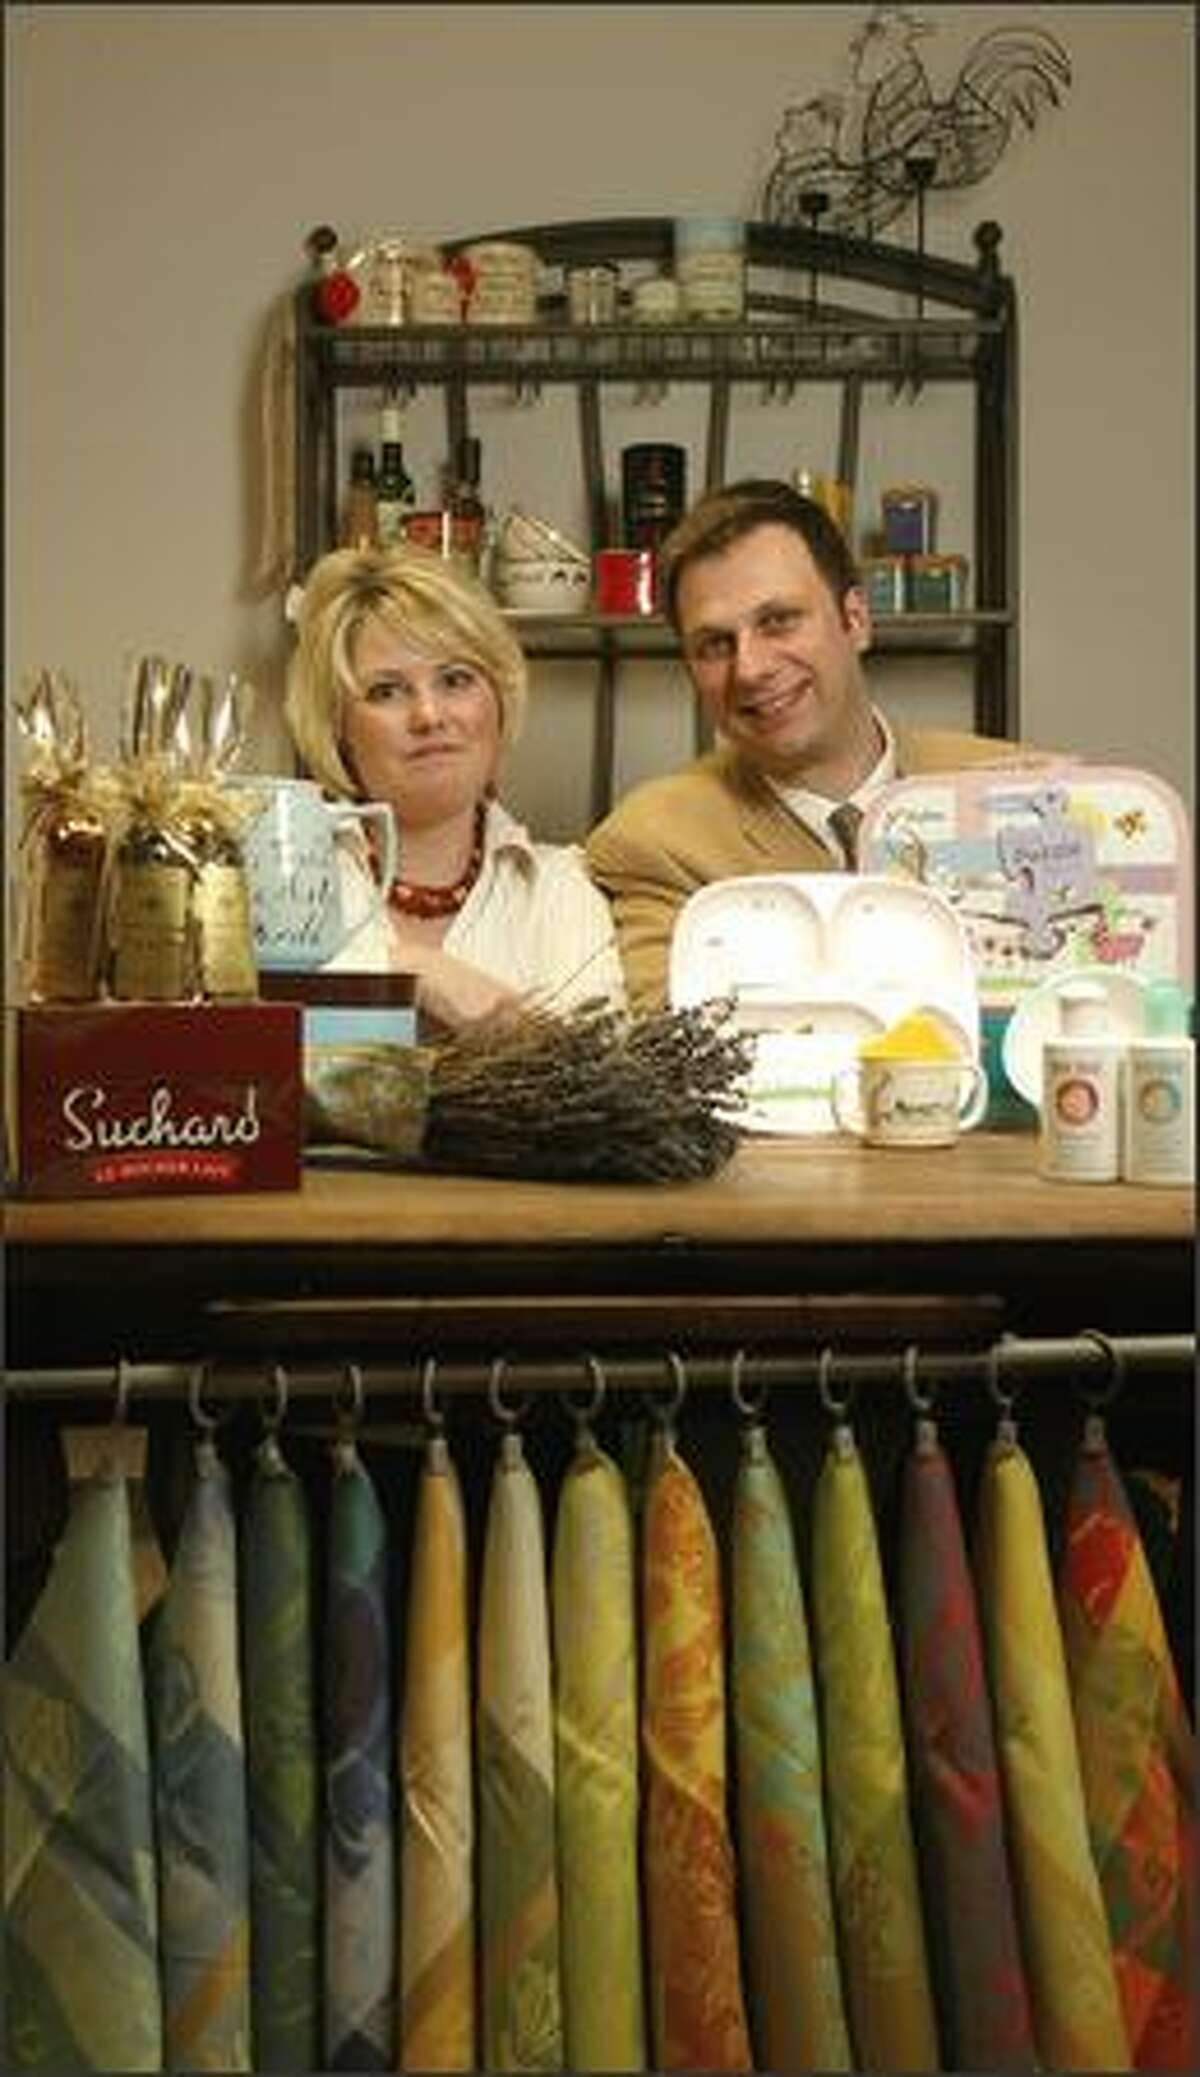 Lisa and Hugues Deriau display some of The Frenchy Bee's products, including French kitchen towels.